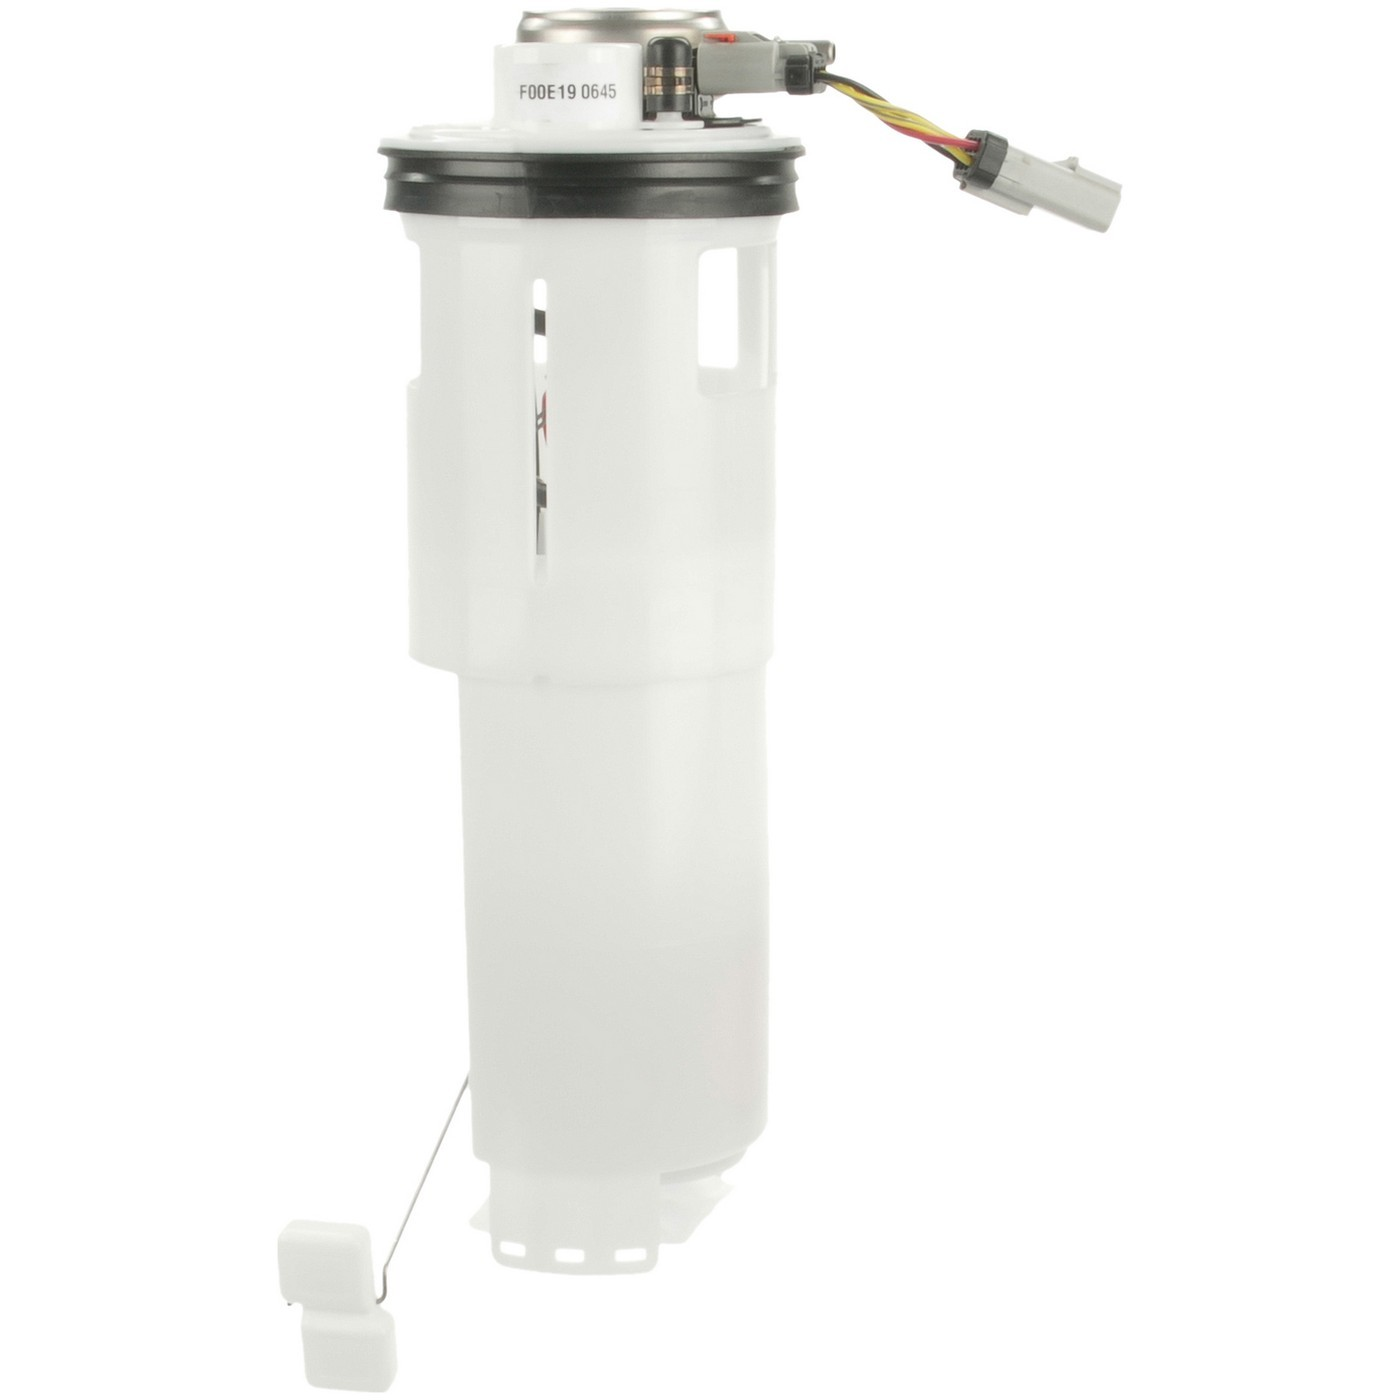 Fuel Pump Assemblies Bosch Auto Parts Filter Supplied The Industrys First Injection System With A High Pressure Electric In 1967 Since Then Has Stood At Forefront Of